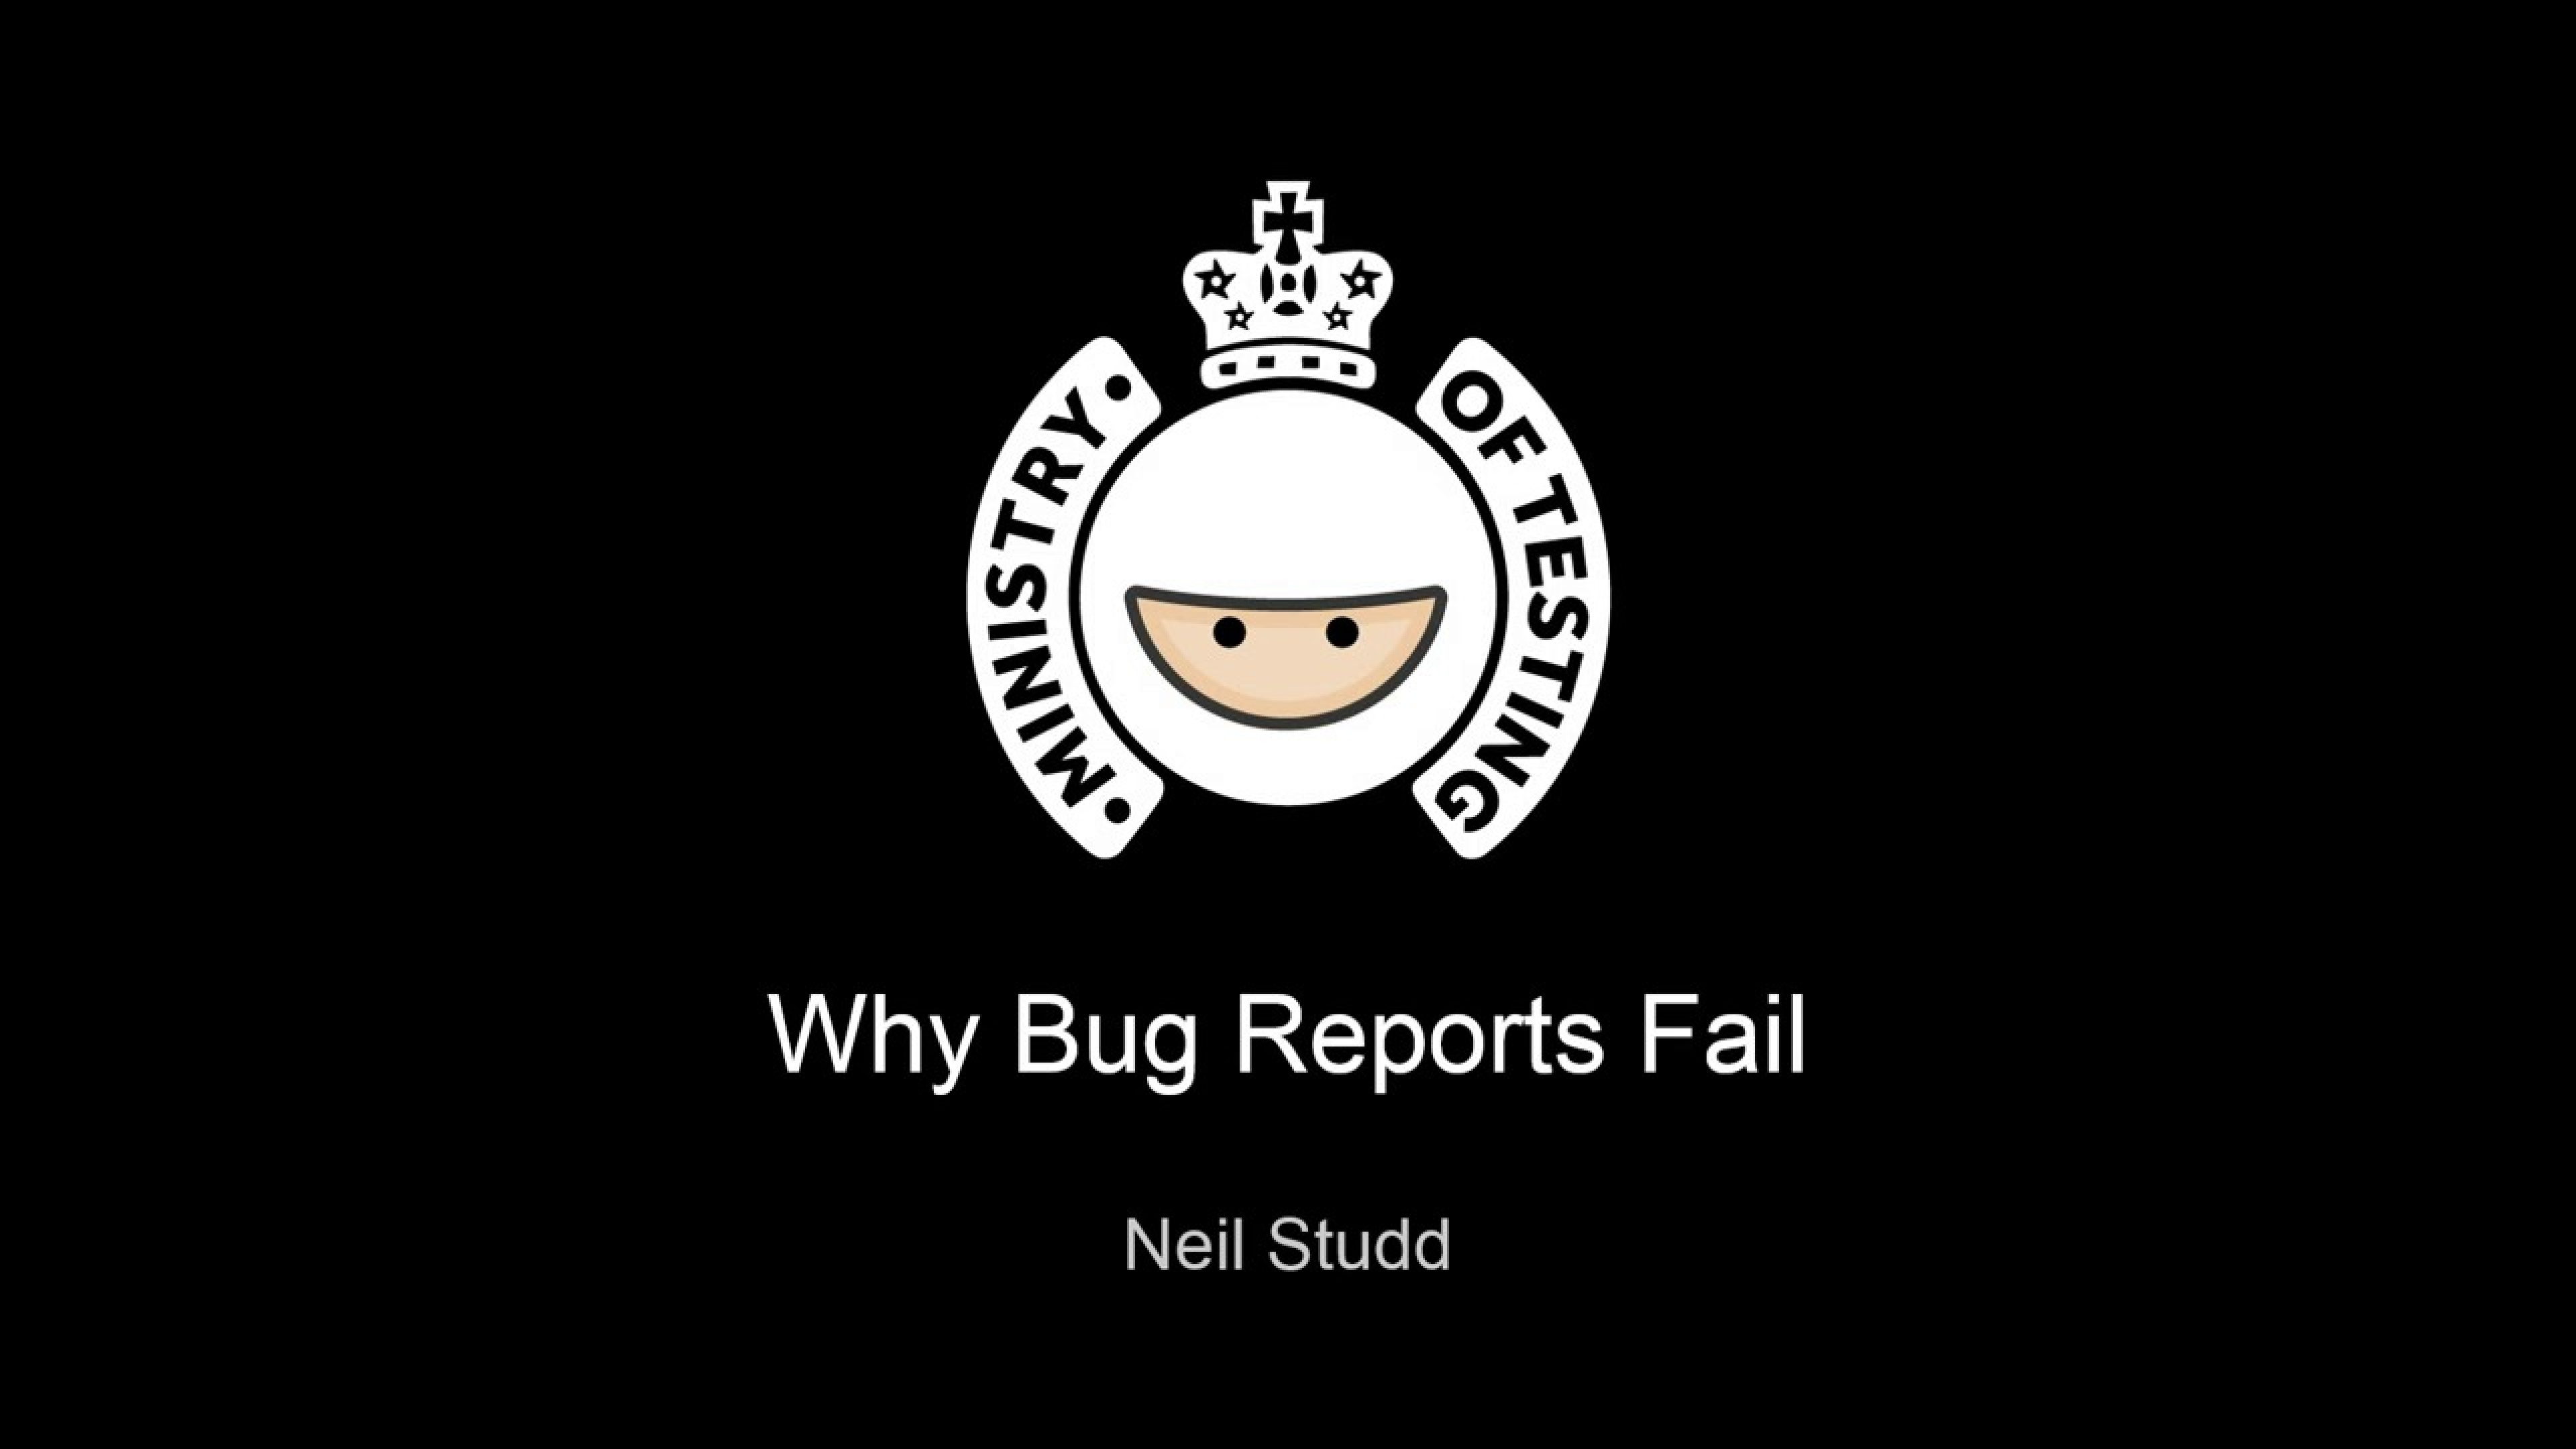 Why Bug Reports Fail - Neil Studd